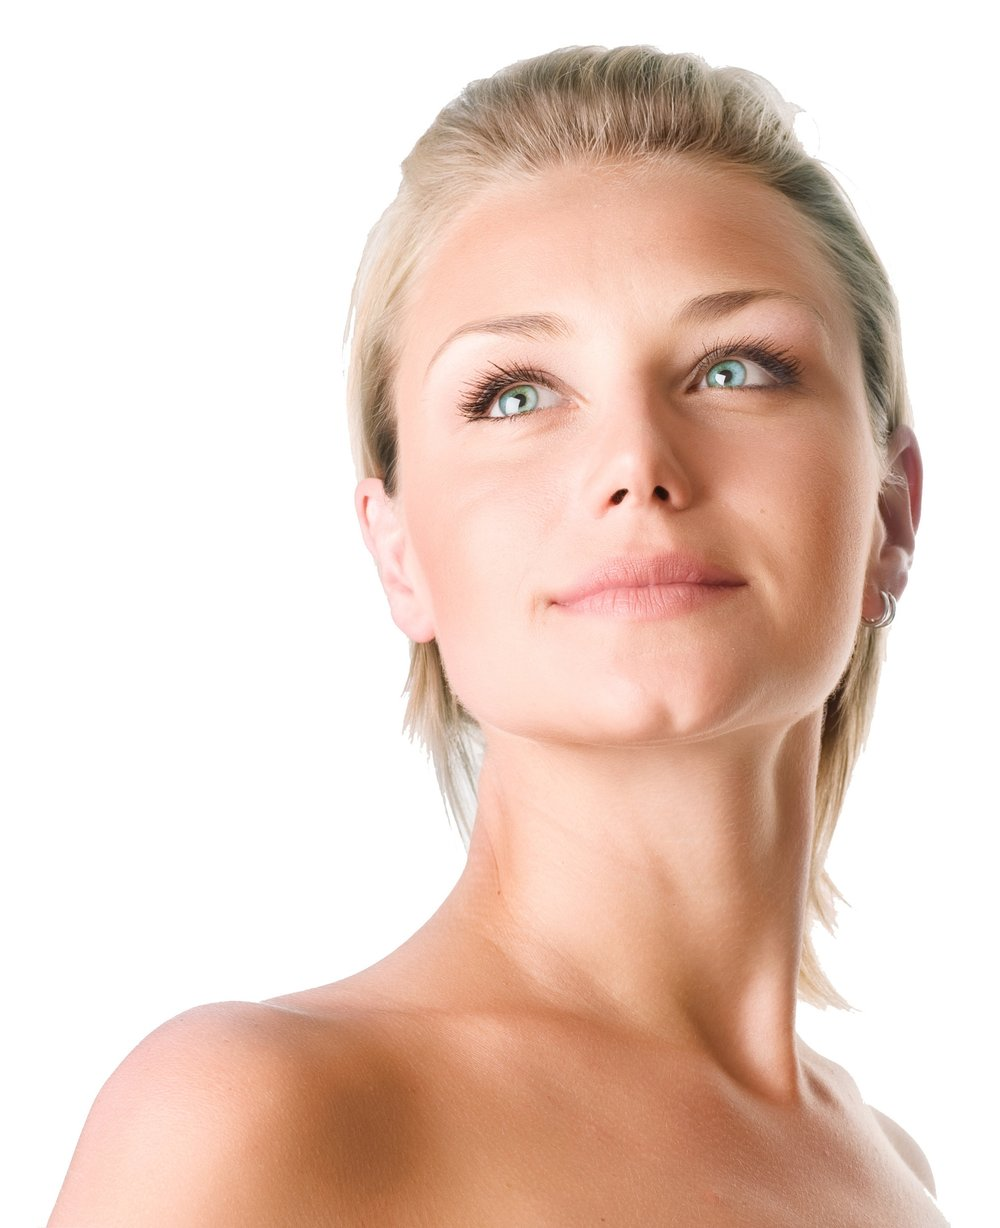 Full Face  - Package of 6Regular price $1380Promo price $699 Book Now & Get + 1 Facial Skin Tightening Procedure ($249 value)